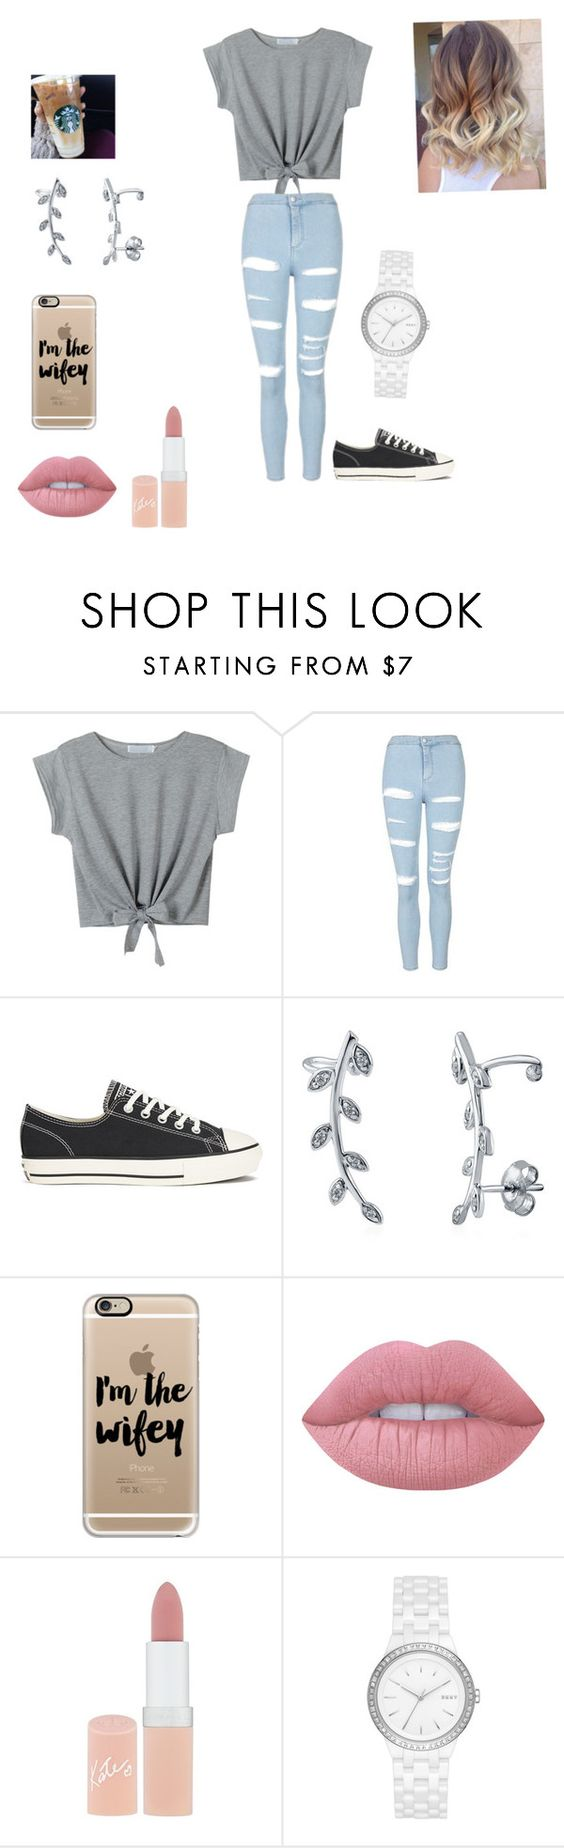 """""""#OOTD pt.2"""" by calismoedyess ❤ liked on Polyvore featuring Topshop, Converse, BERRICLE, Casetify, KEEP ME, Lime Crime, Rimmel, DKNY and tylersoutfits"""